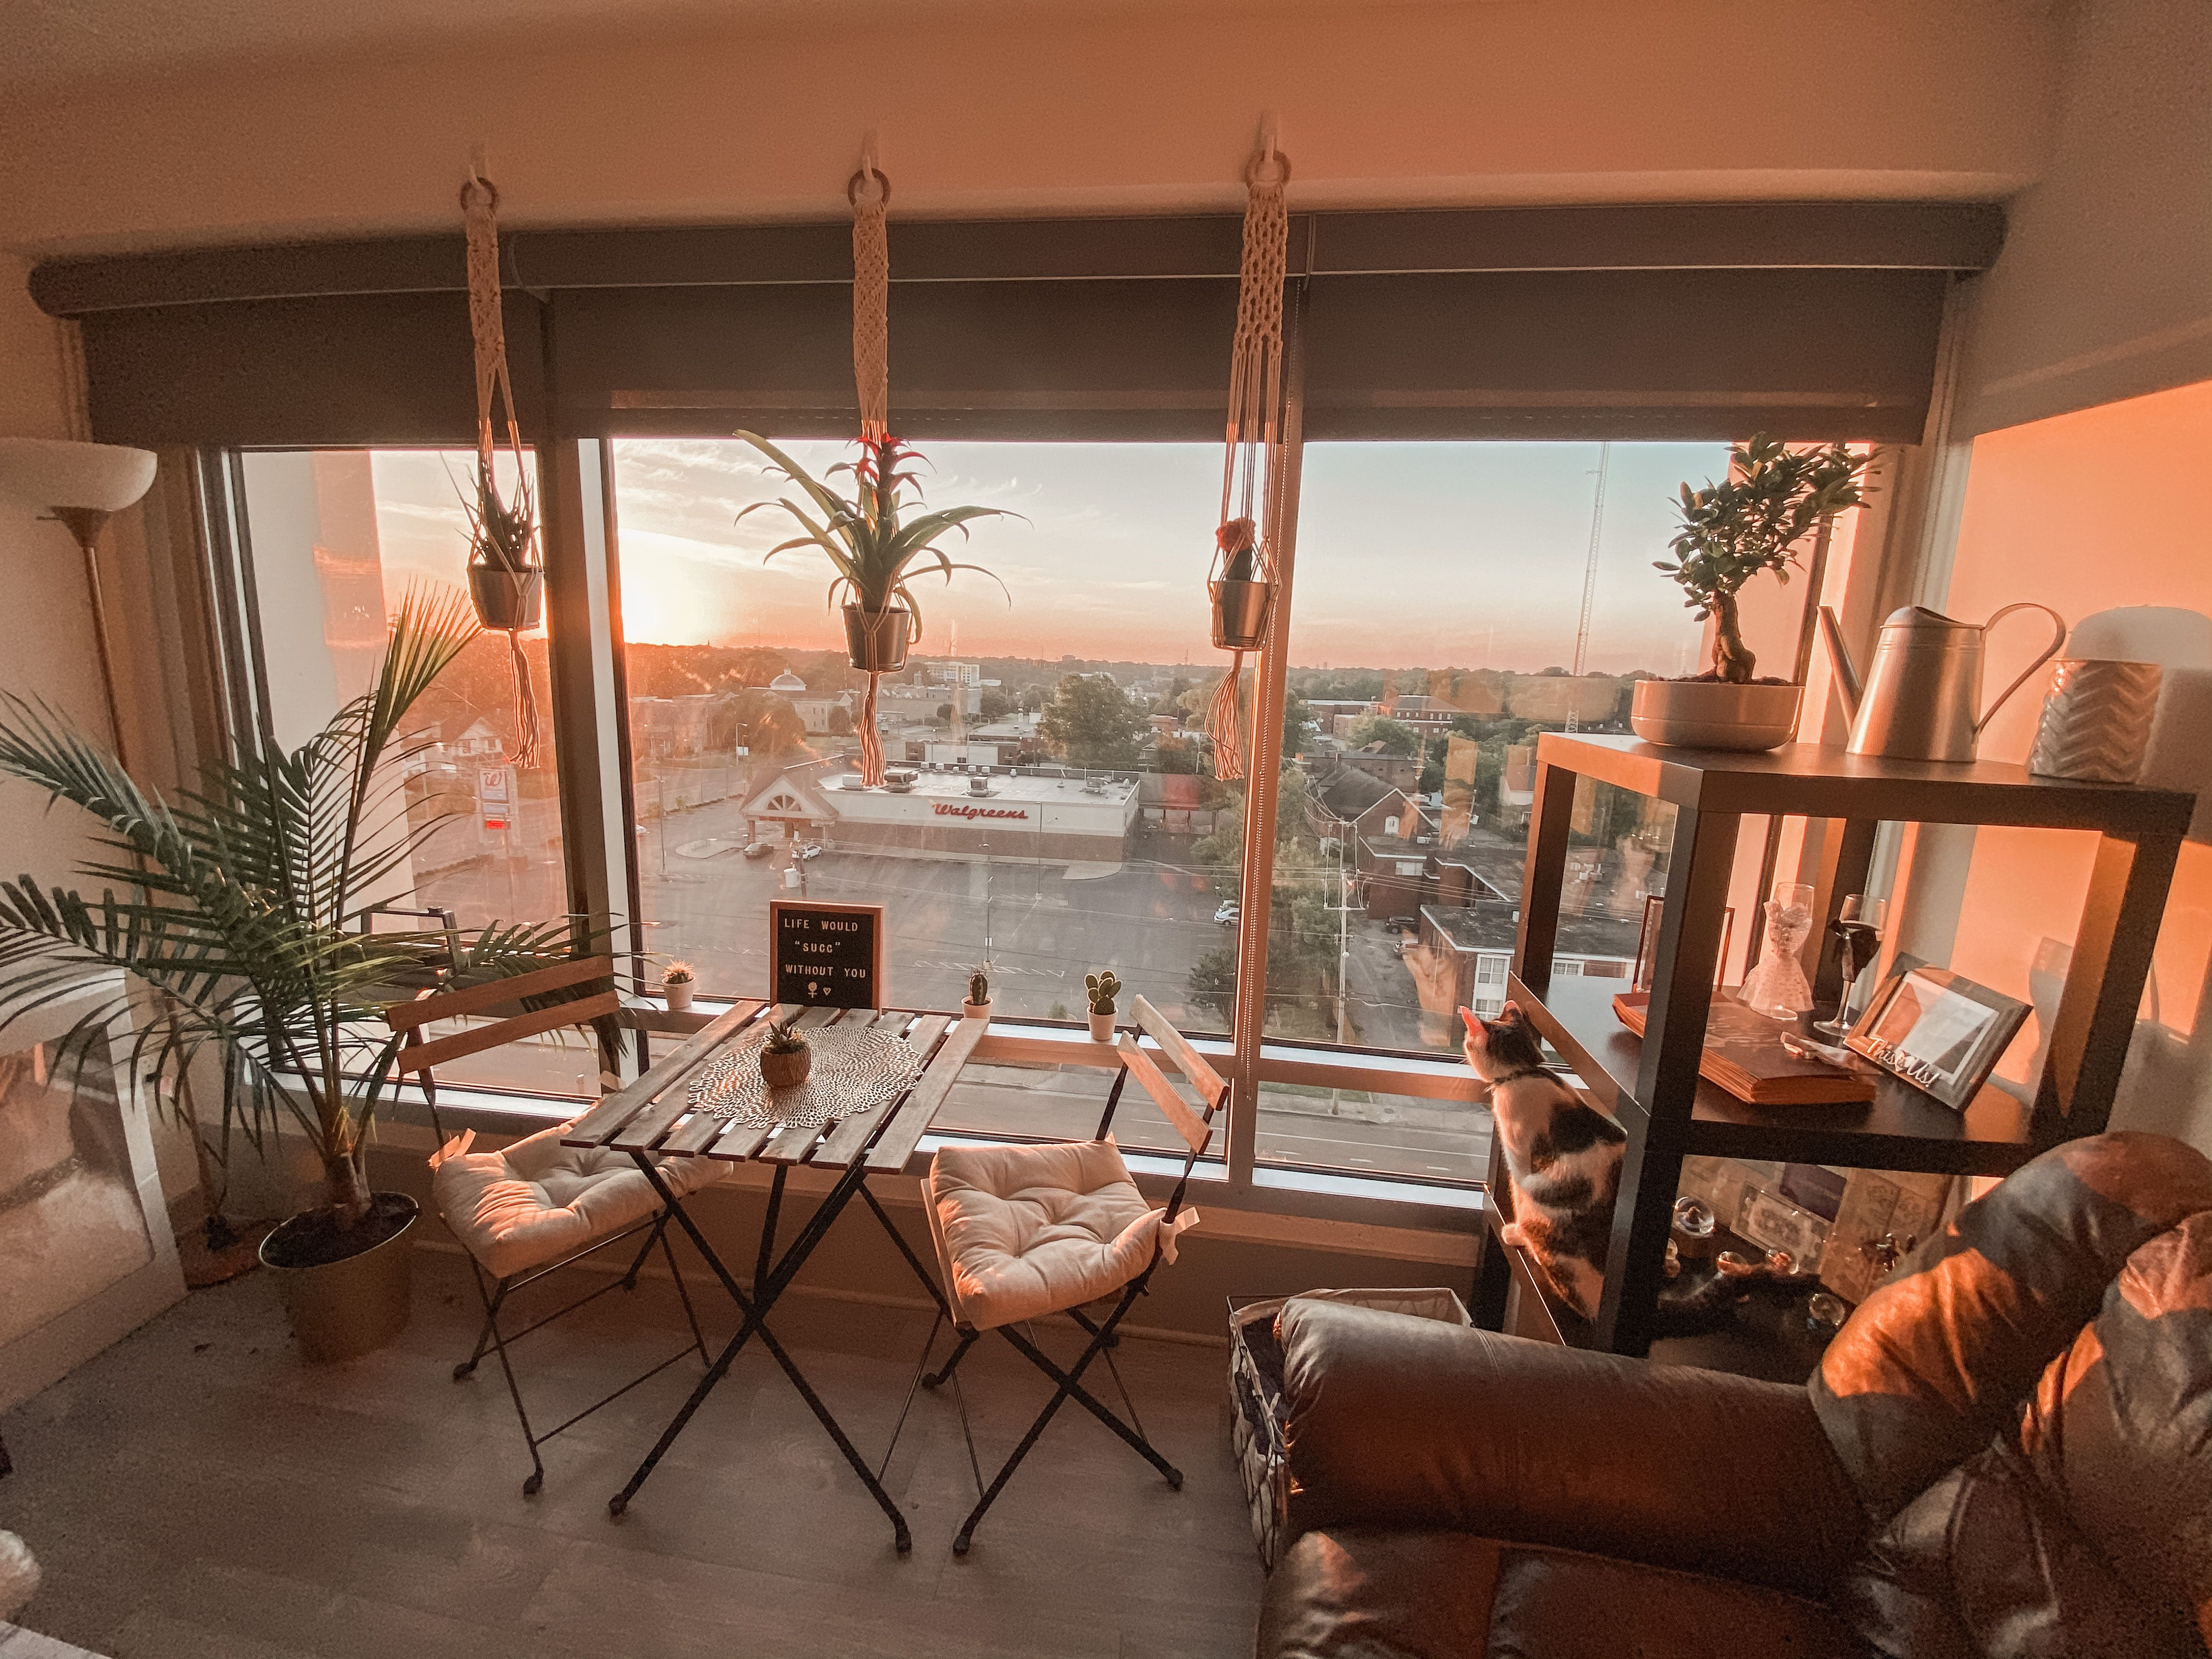 Sunrise In Our Living Room Every Morning Cafe Interior Design Cafe Design Cafe Interior